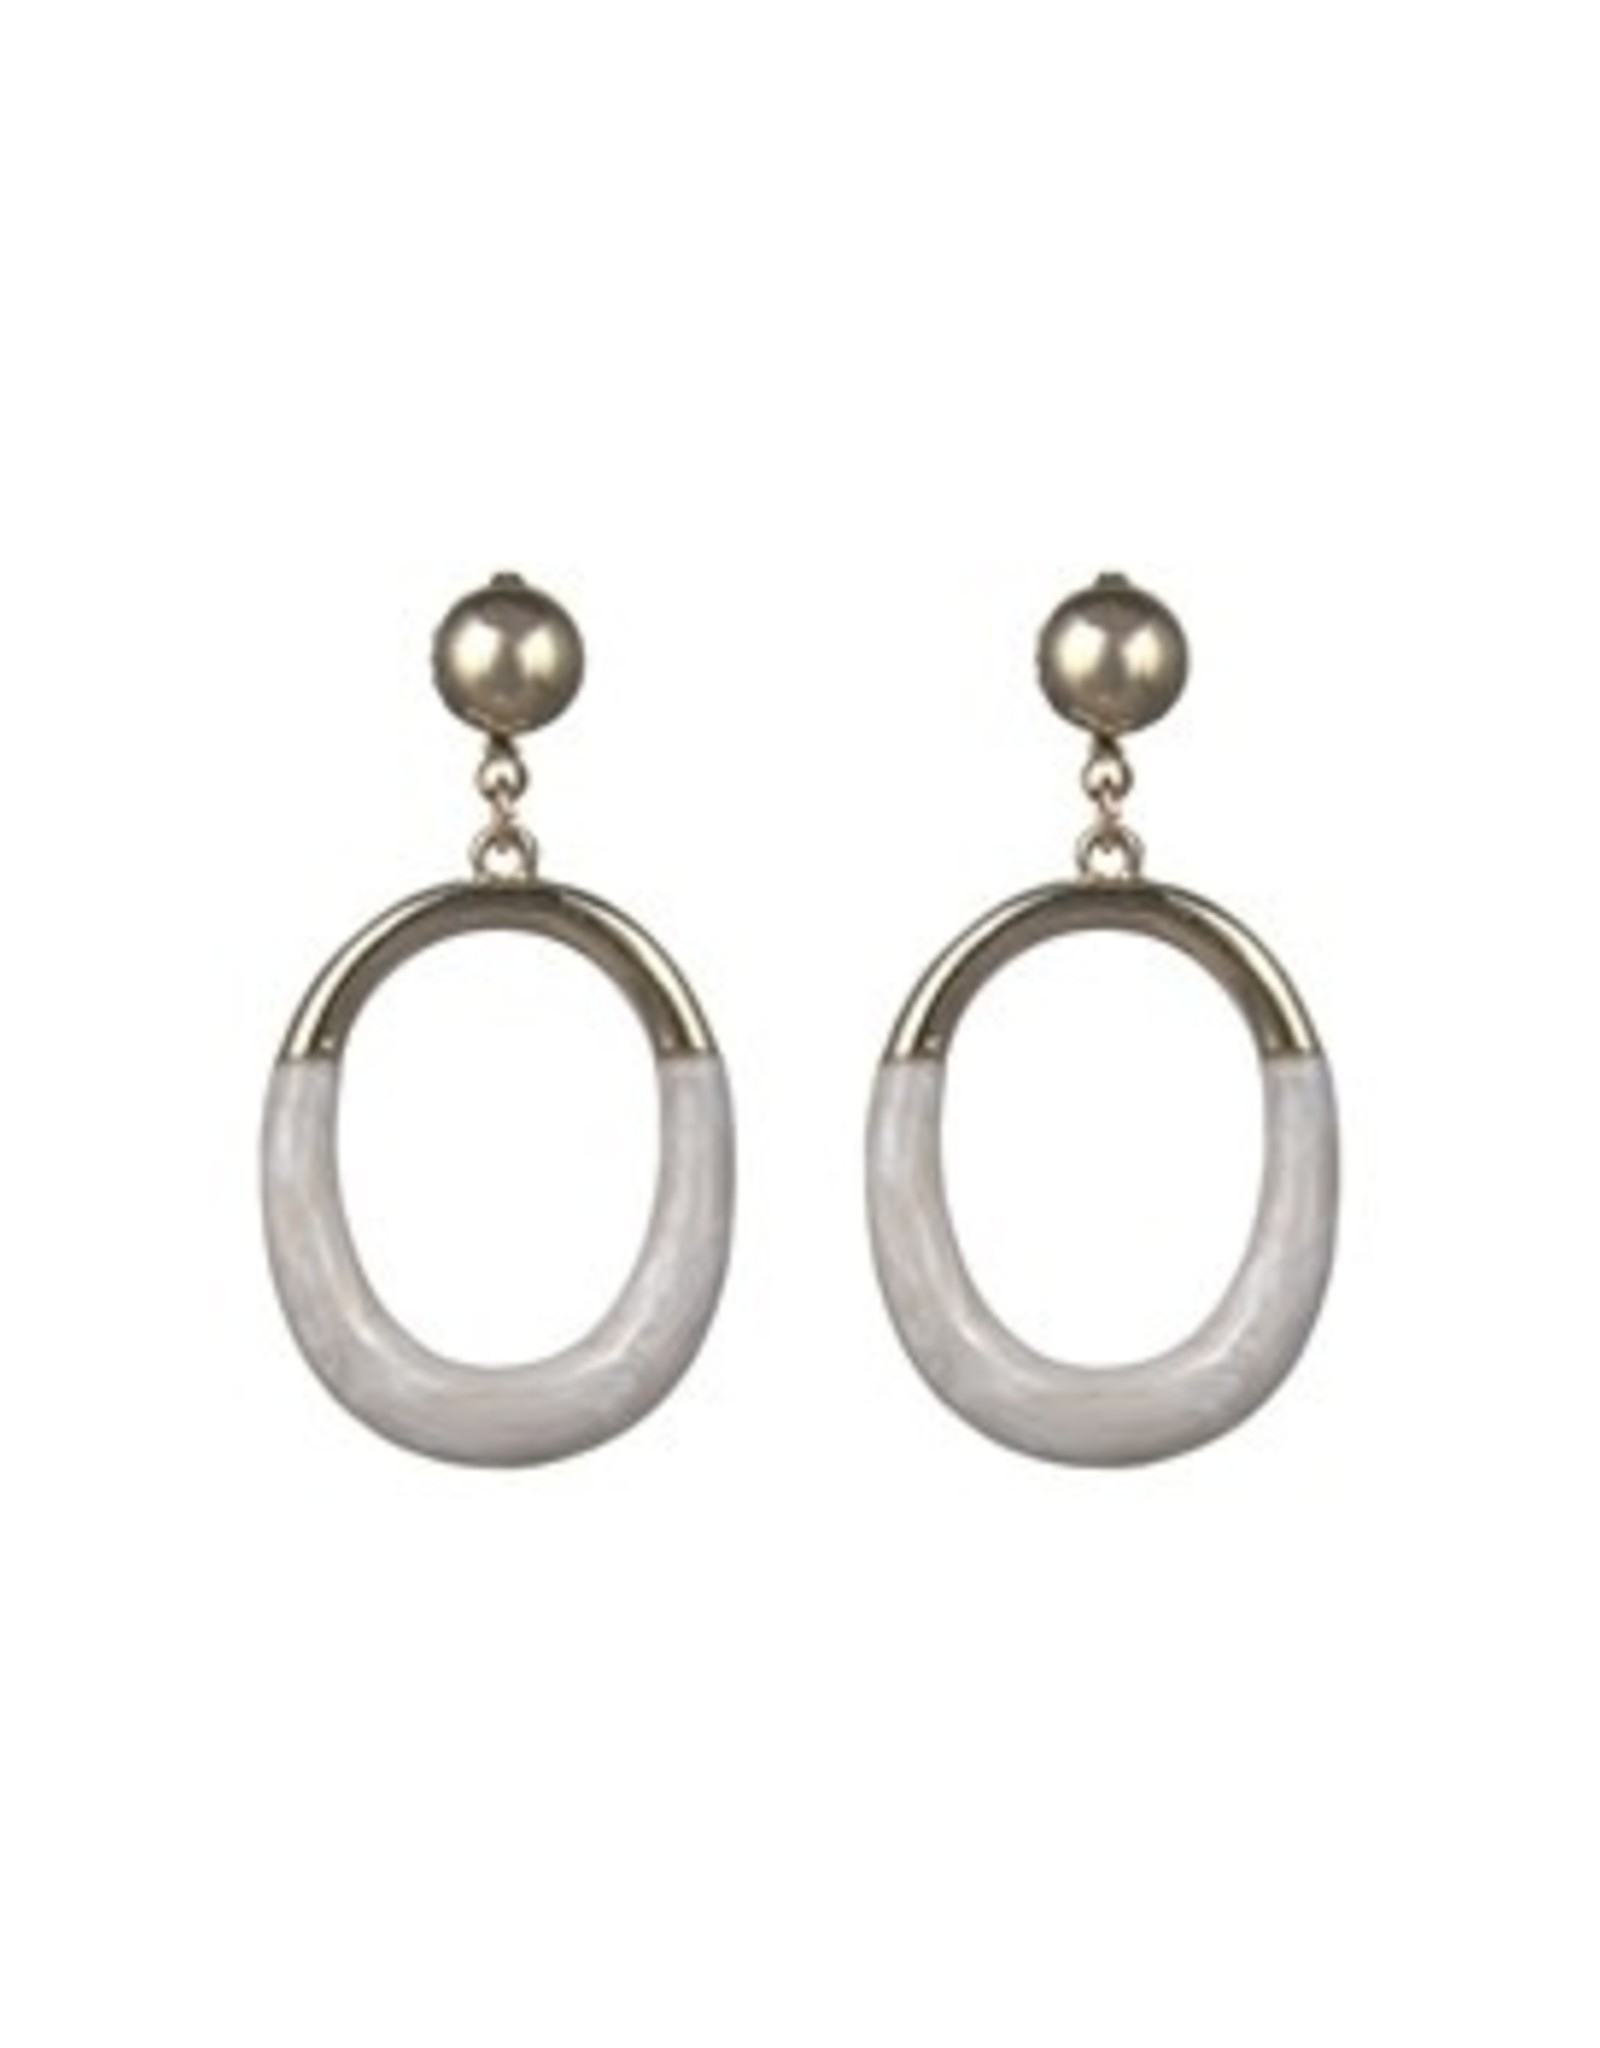 GOLD POST WITH IVORY ENAMEL DIP OVAL EARRING